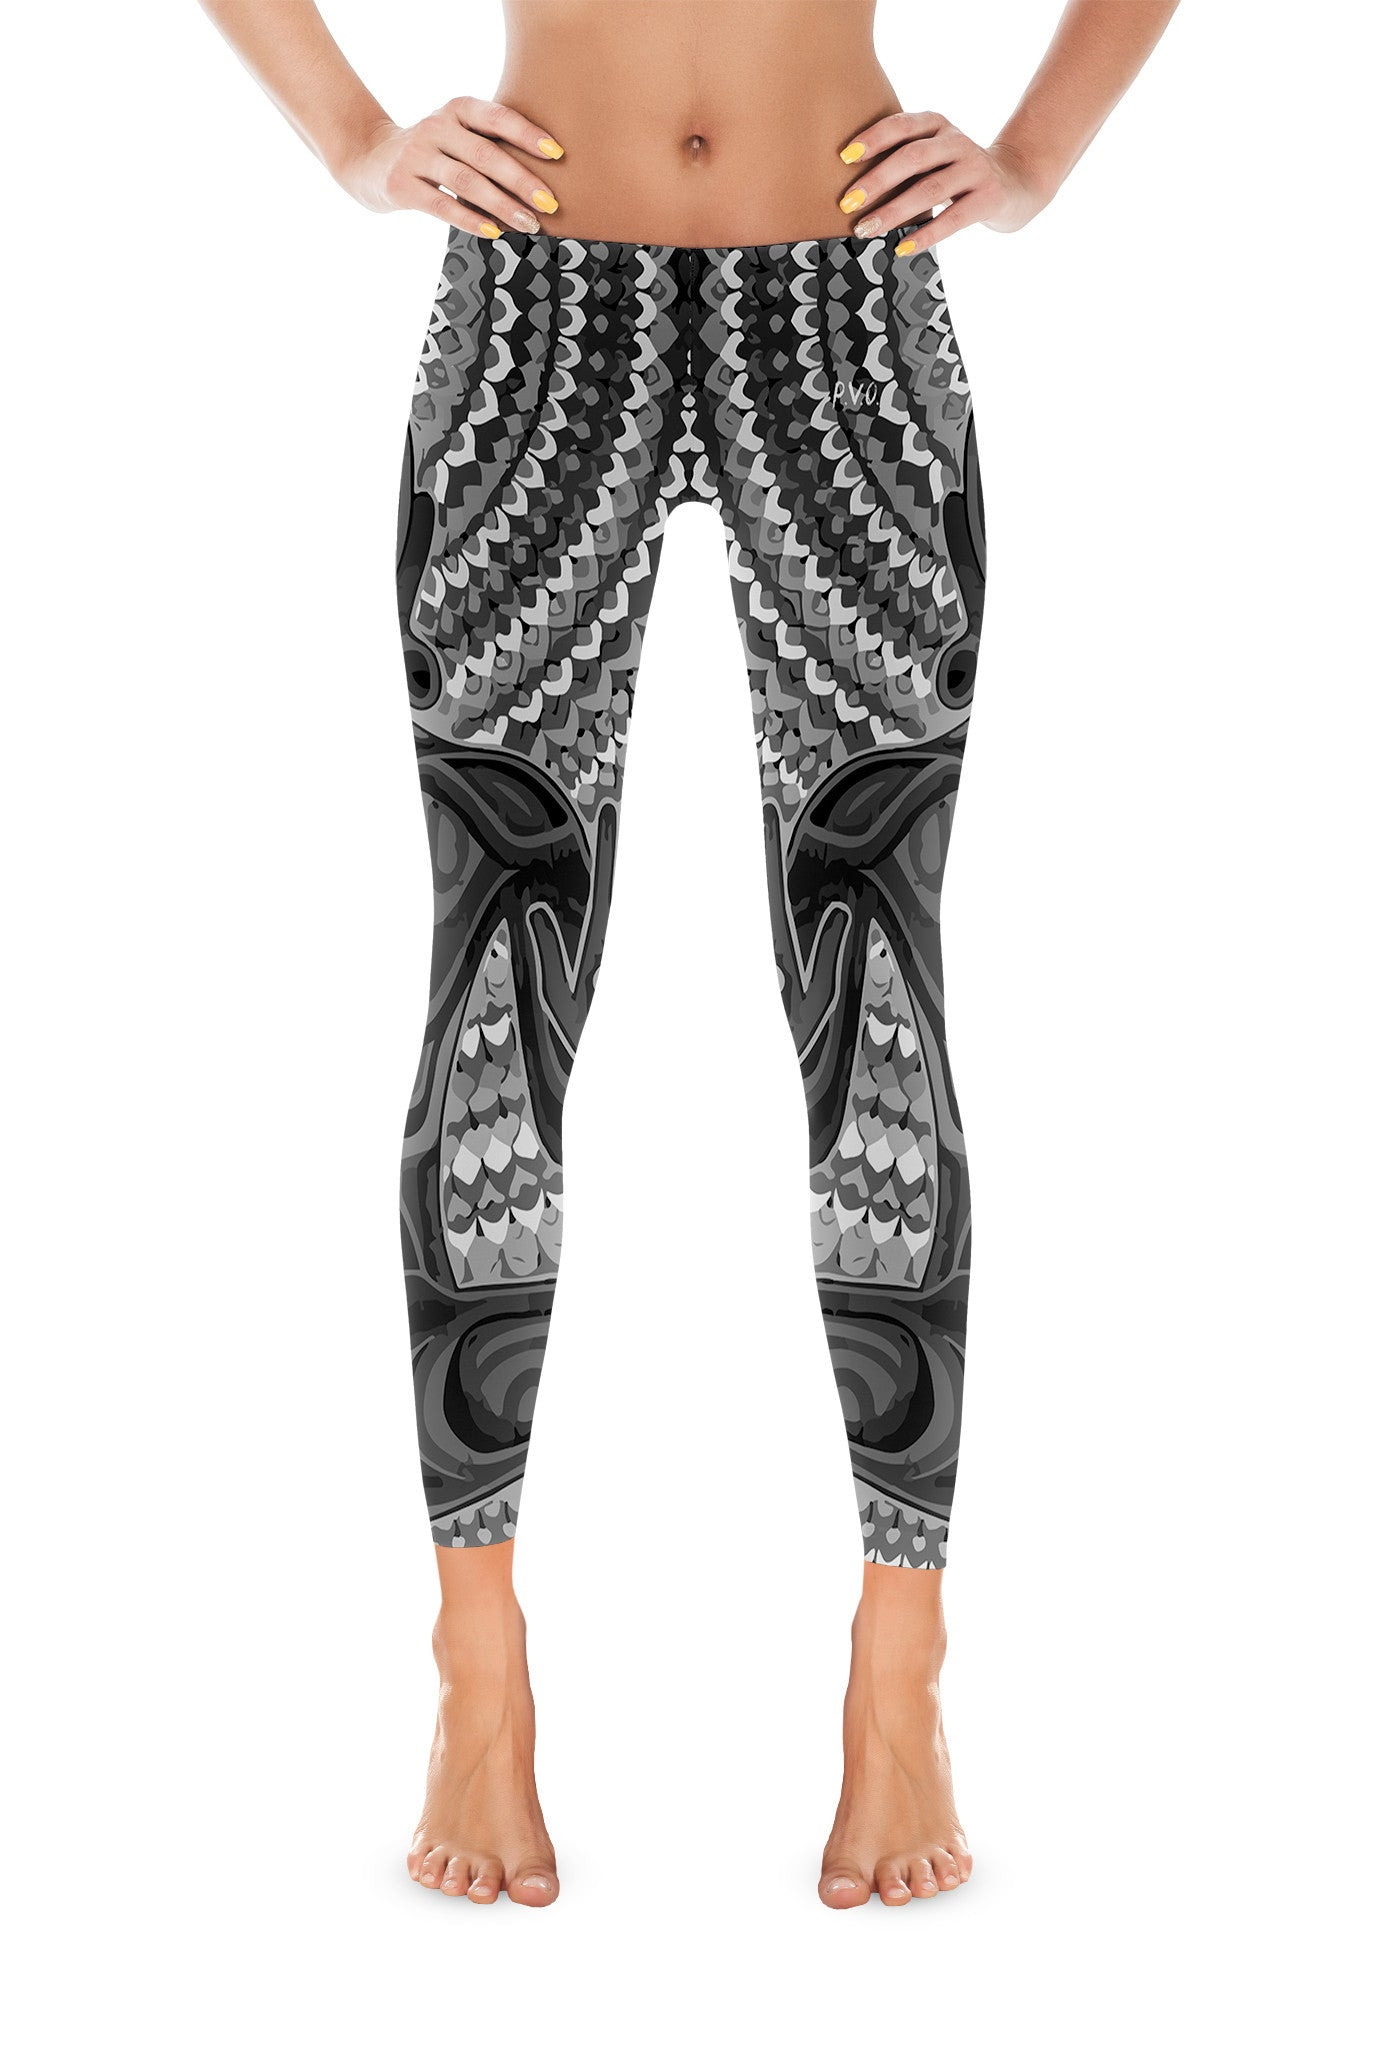 Tantra Leggings Legging - Square Boy Clothing